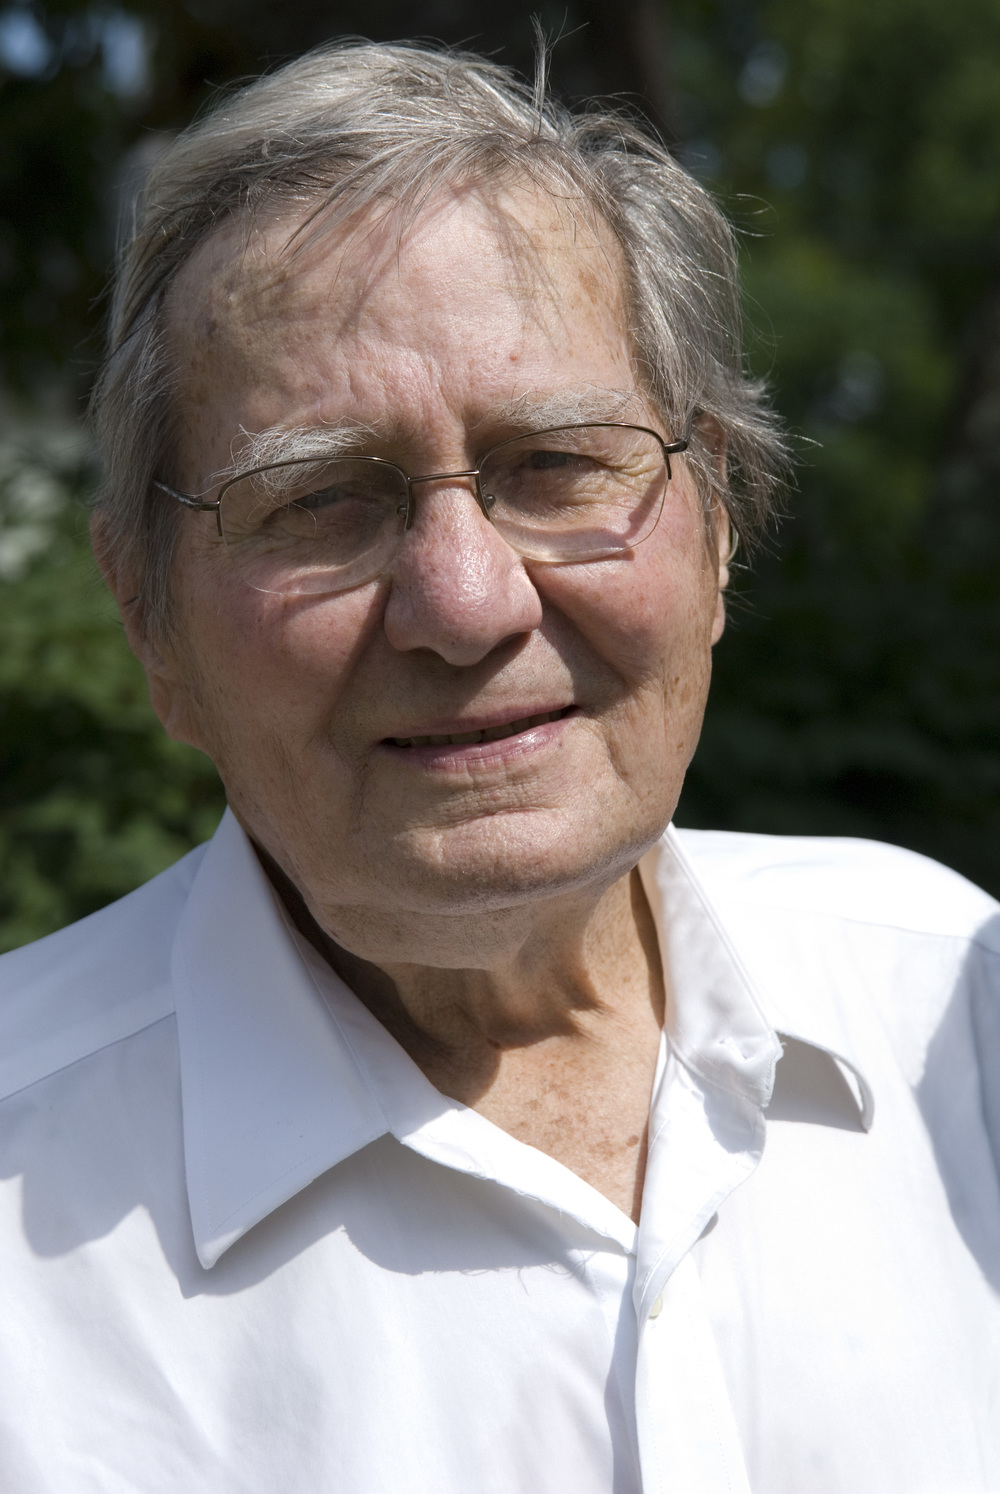 Galway Kinnell in Ashfield, MA, following his extraordinary poetry reading. Photo (c) Chelynn Tetrault Photography